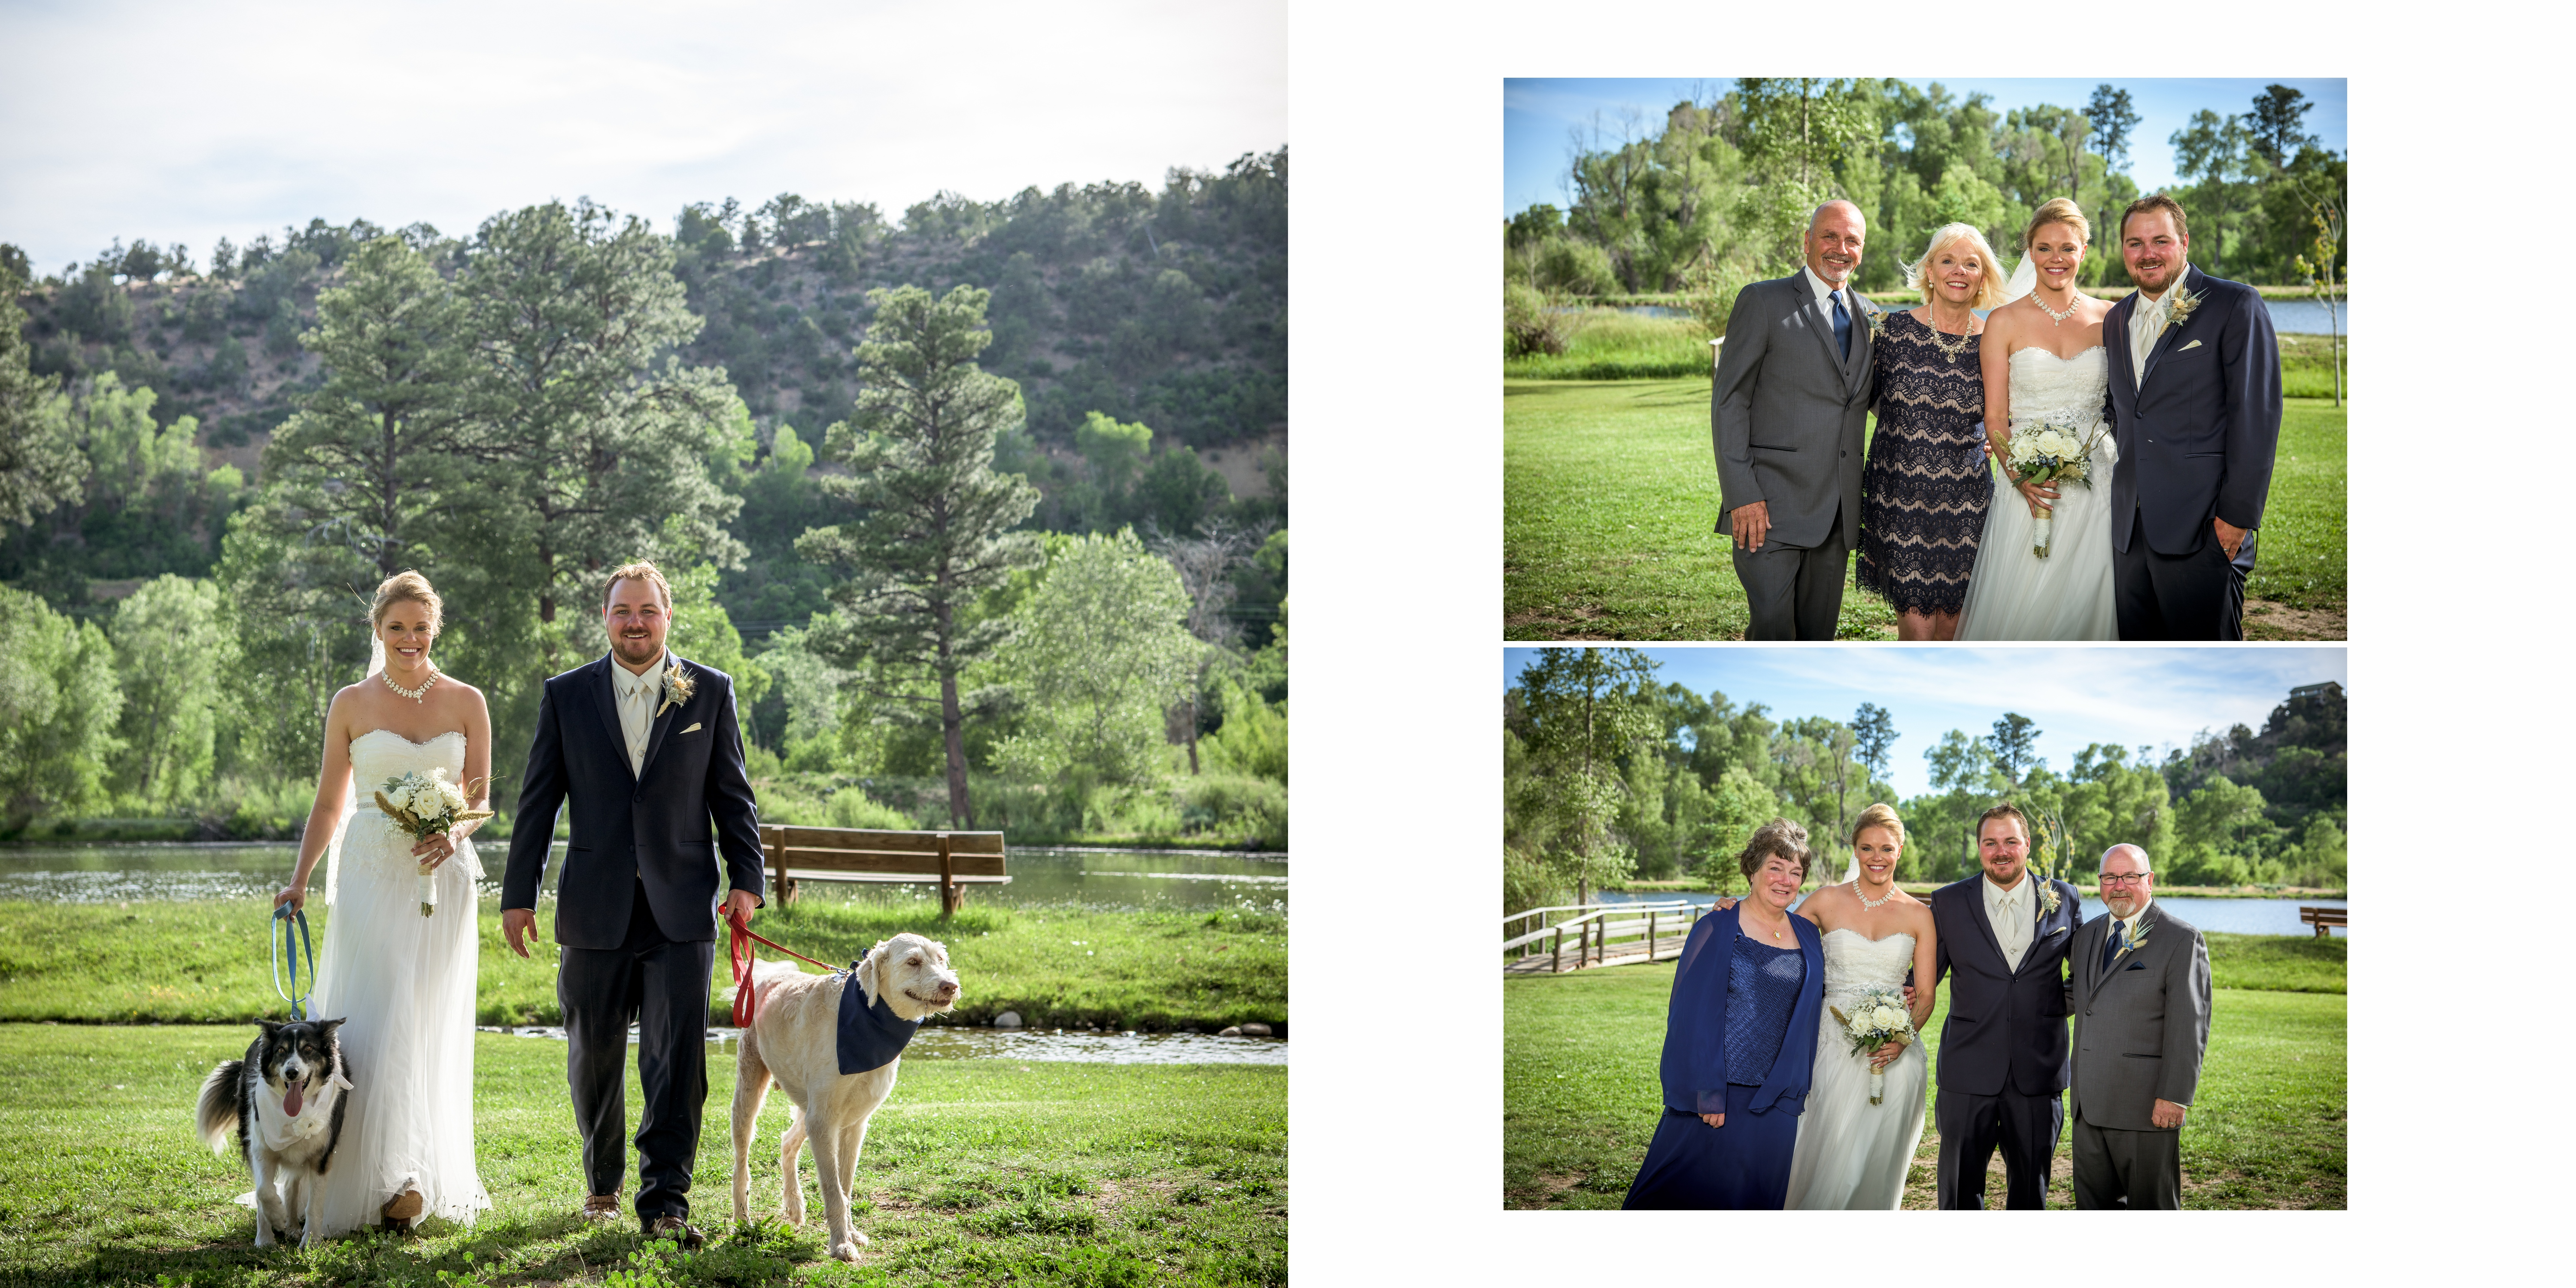 Durango Wedding Venues